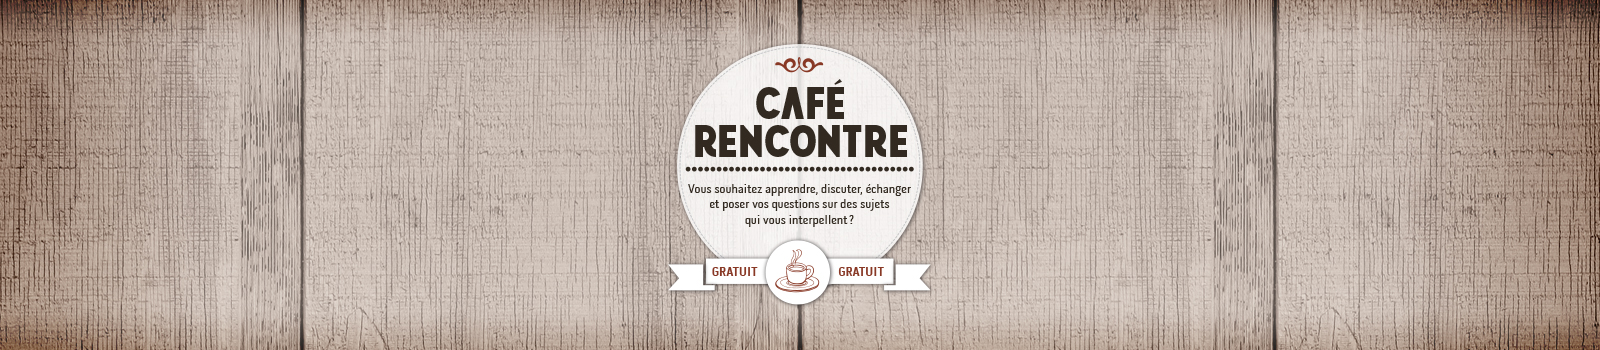 CafeRencontre